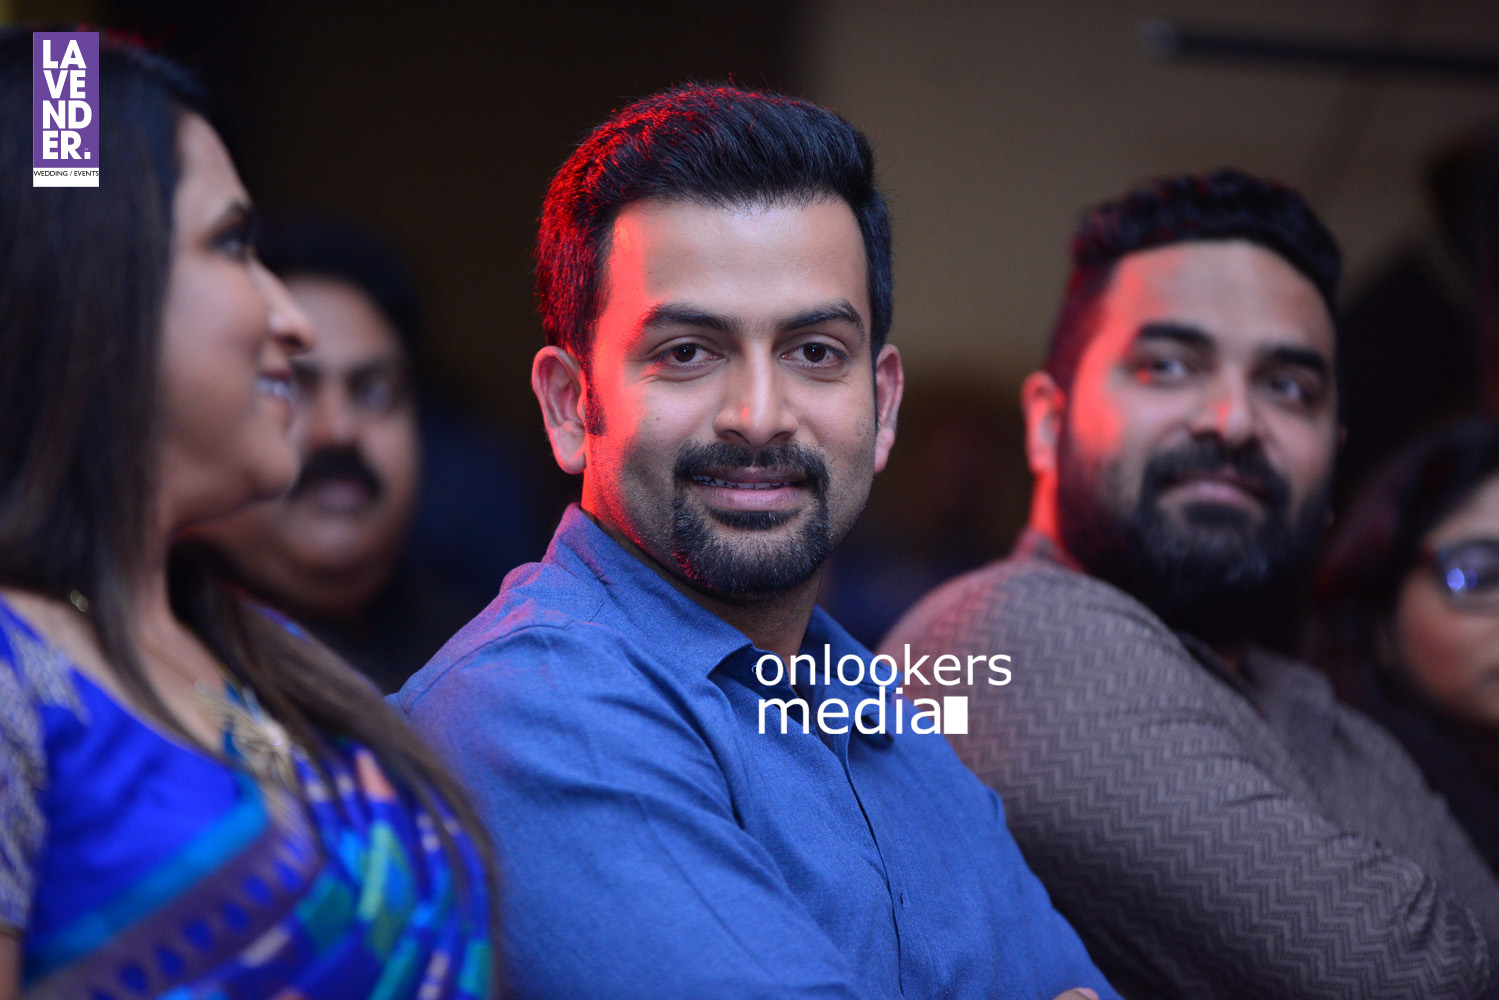 Ennu Ninte Moideen, Ennu Ninte Moideen 150 days, prithviraj latest photos, parvathy stills, malayalam actress paravthy, tovino thomas stylish look, prithviraj stylish